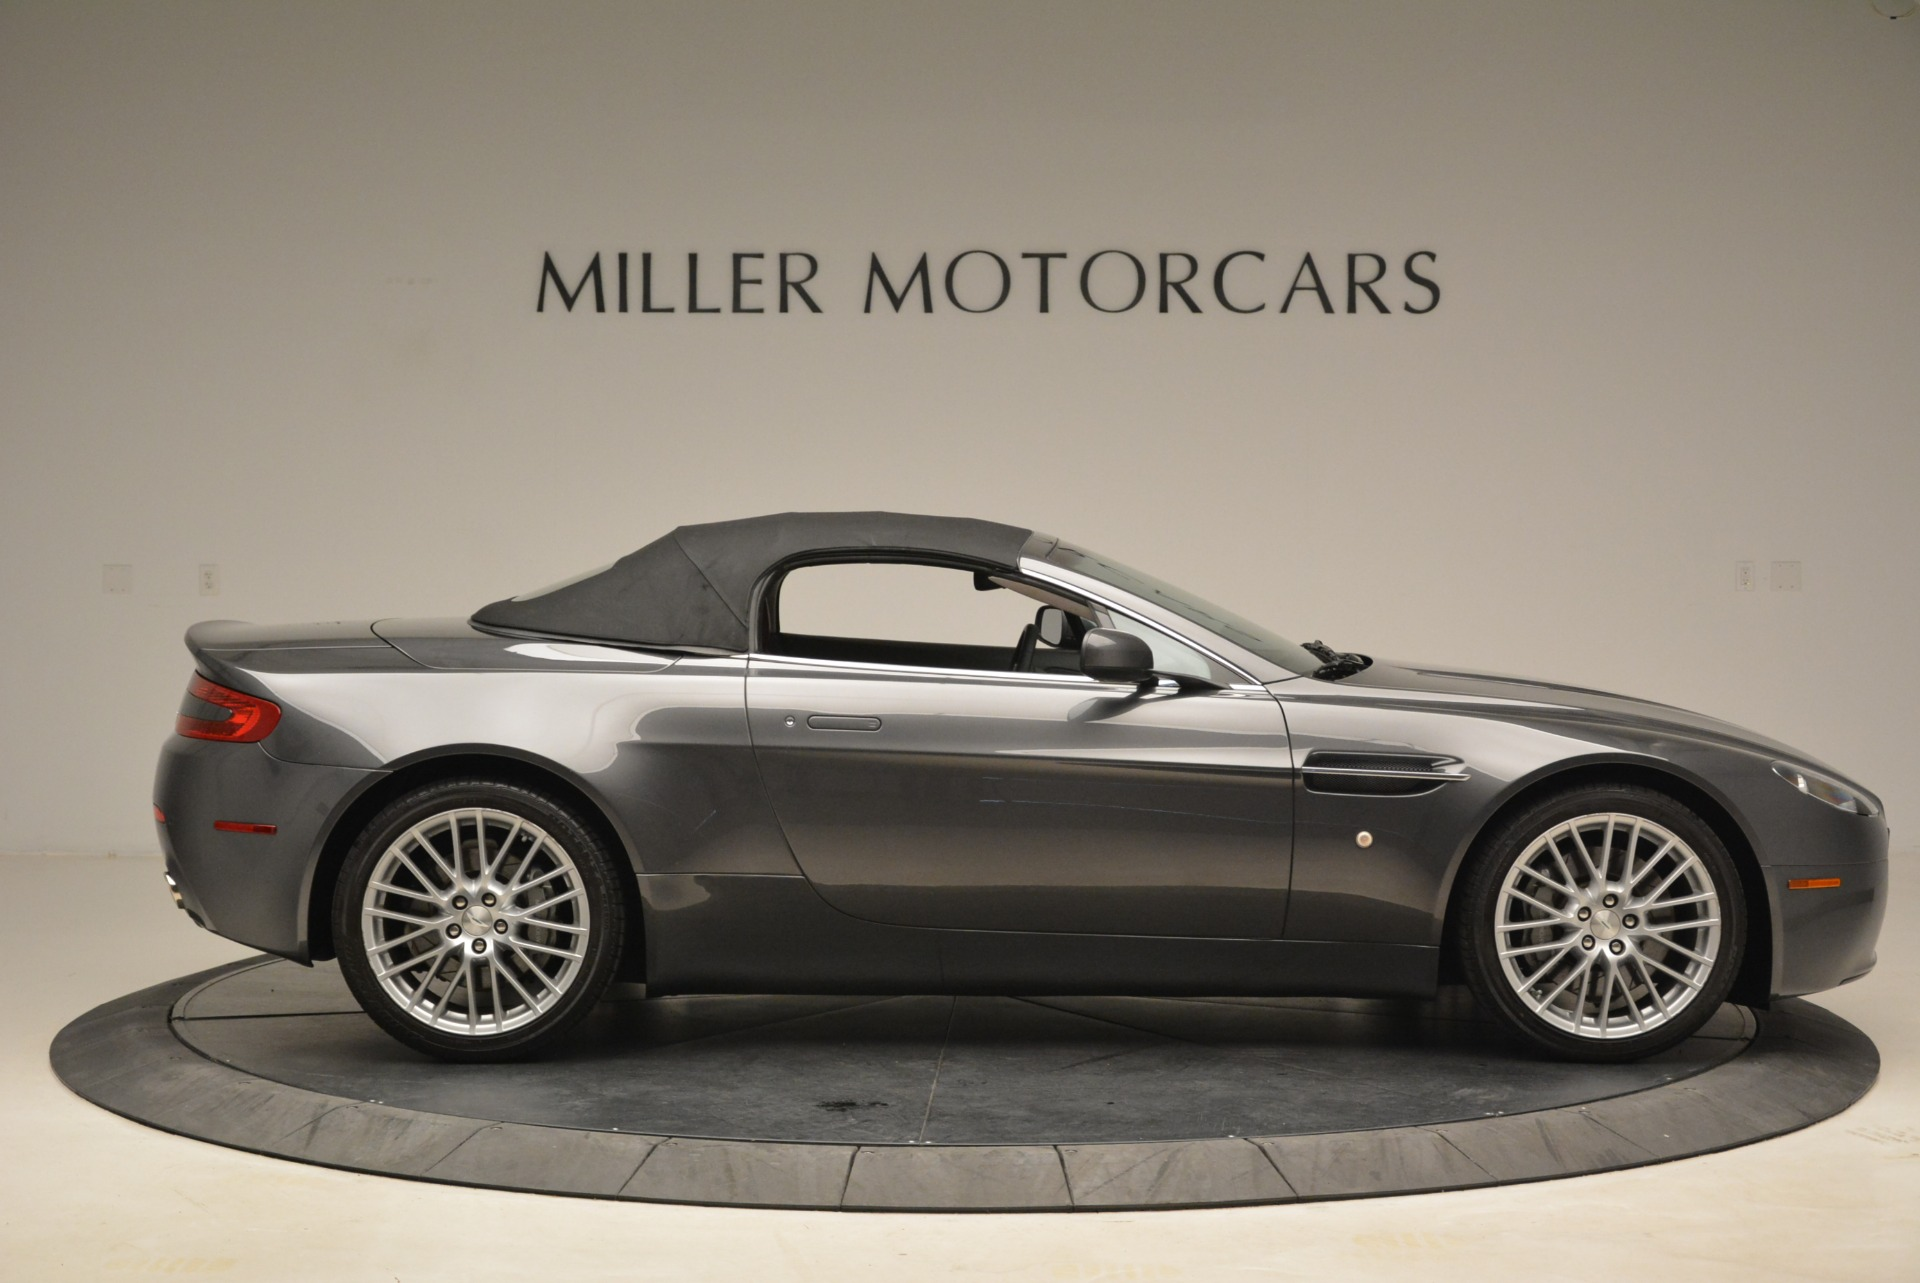 Used 2009 Aston Martin V8 Vantage Roadster For Sale In Westport, CT 2123_p21